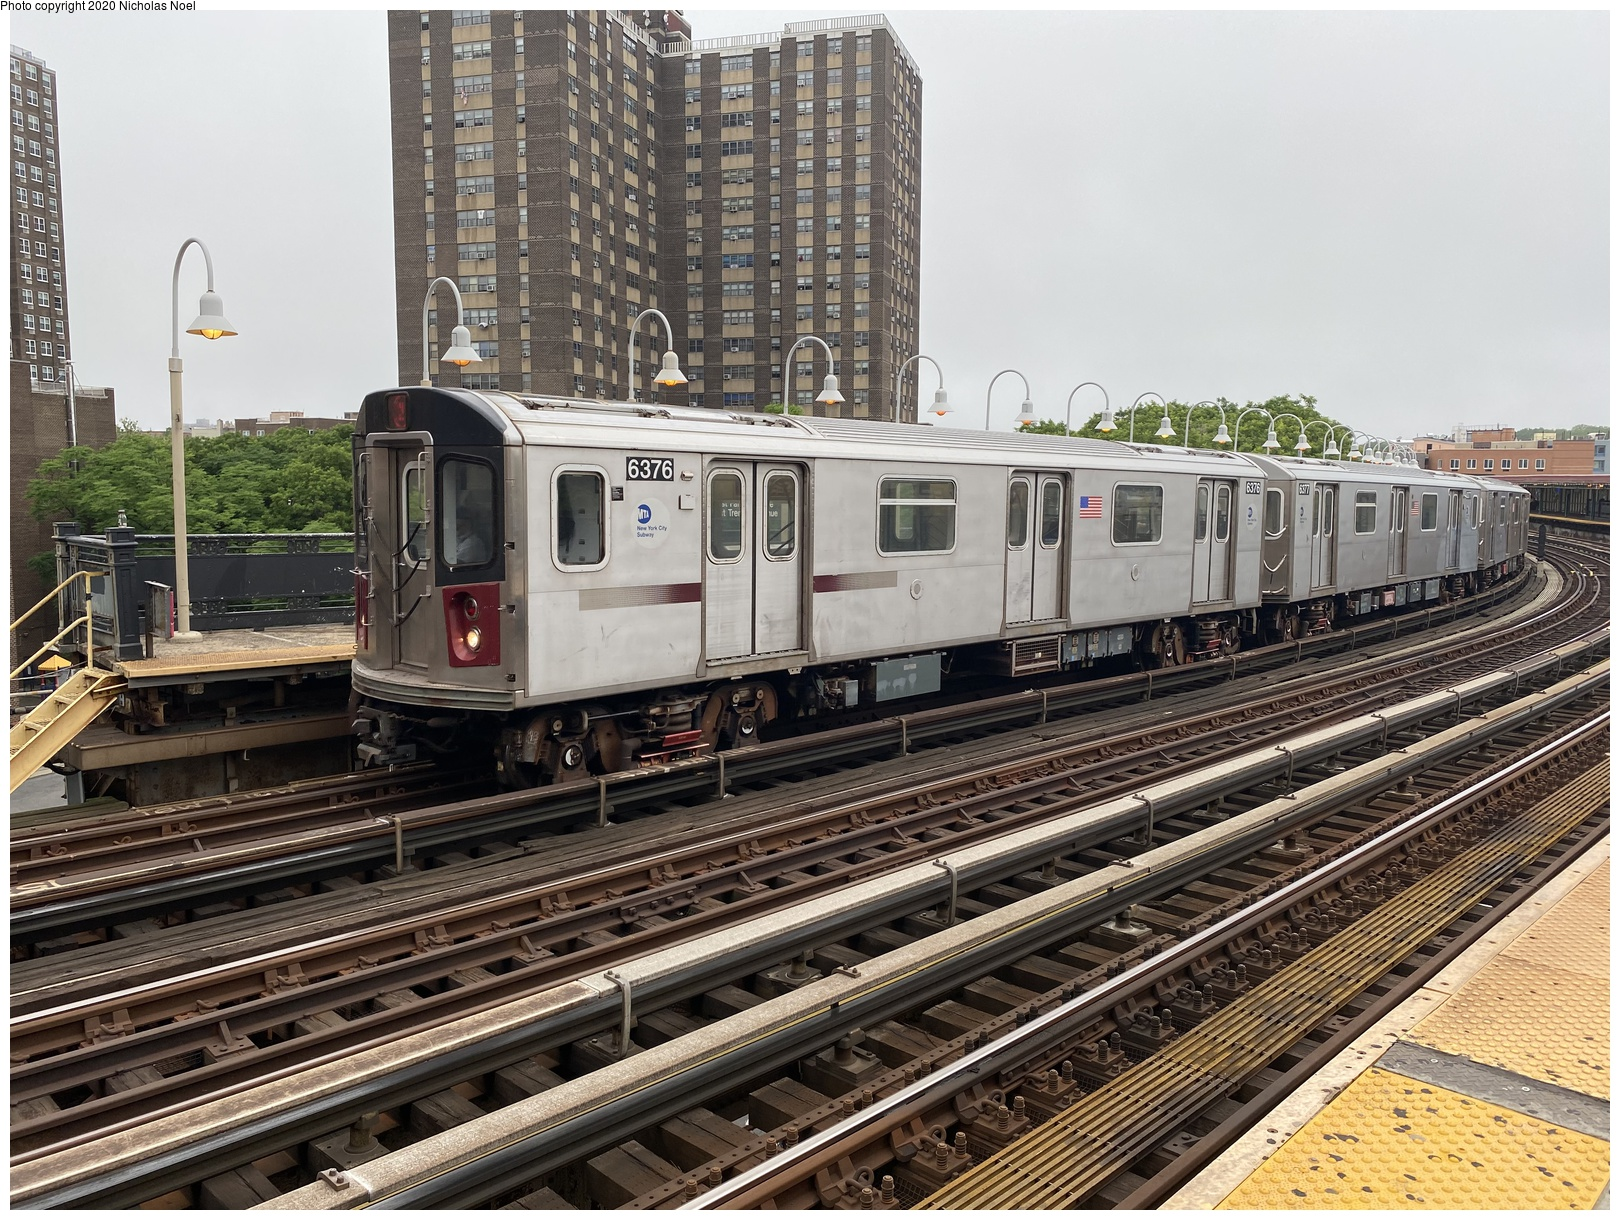 (188k, 1044x727)<br><b>Country:</b> United States<br><b>City:</b> New York<br><b>System:</b> New York City Transit<br><b>Line:</b> BMT West End Line<br><b>Location:</b> Bay 50th Street <br><b>Car:</b> BMT D-Type Triplex 6077 <br><b>Photo by:</b> Joel Shanus<br><b>Viewed (this week/total):</b> 3 / 1790